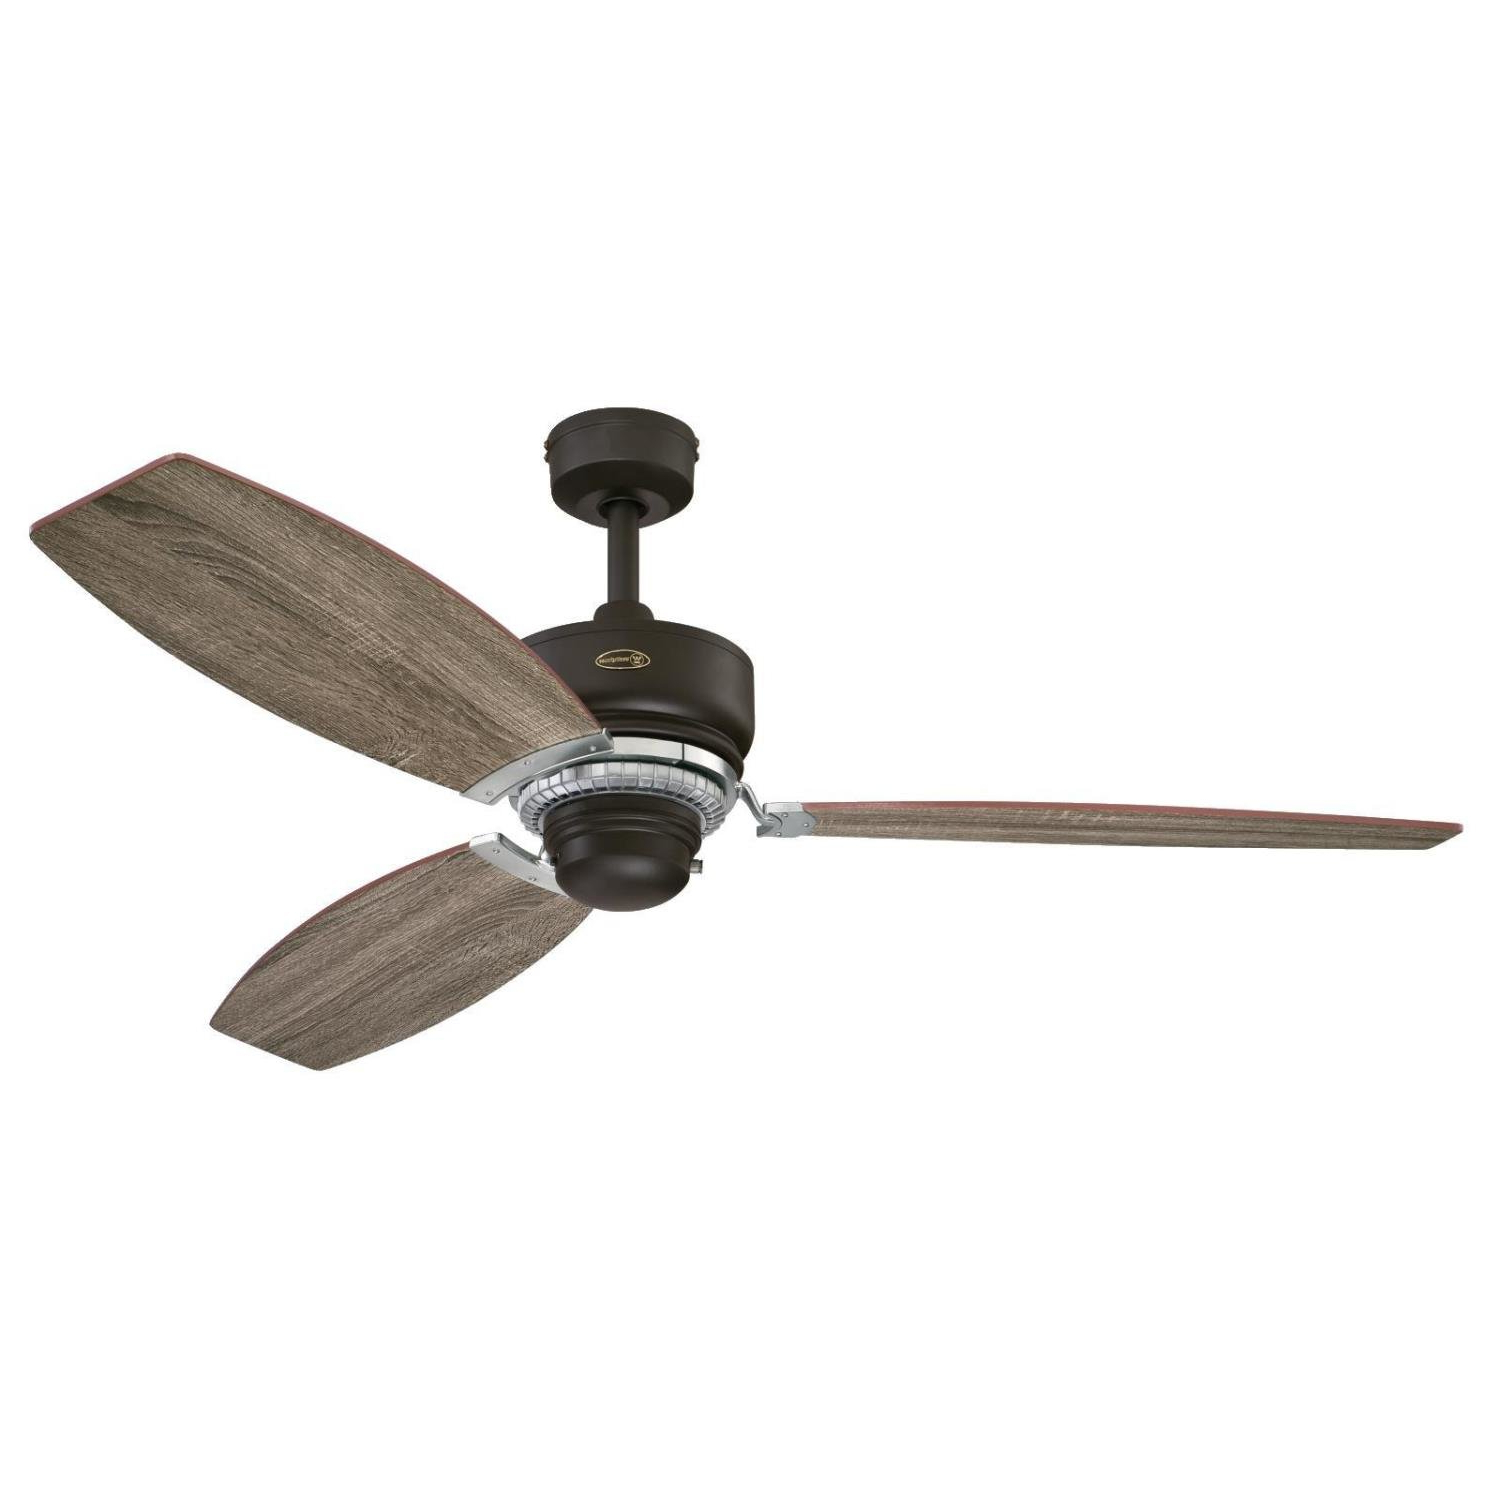 Kyla 5 Blade Ceiling Fans Throughout Well Known Modern Trent Austin Design Ceiling Fans (Gallery 13 of 20)